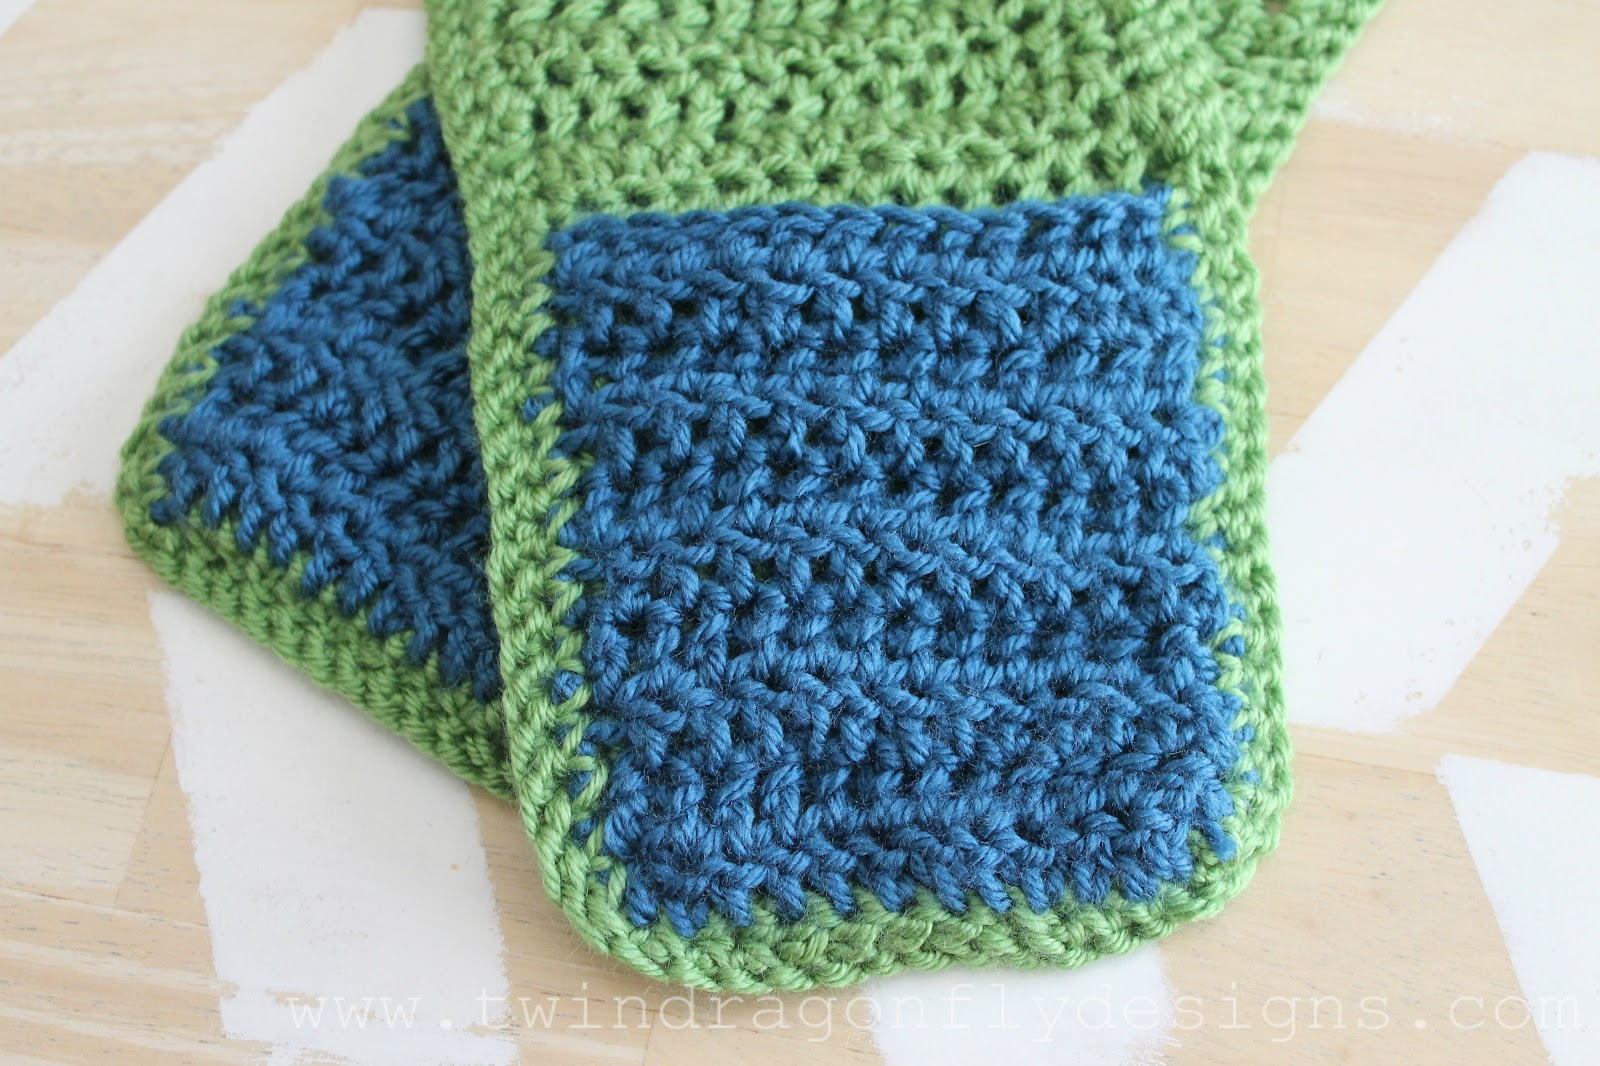 Crochet Scarf Pattern With Pictures : Patterns PDF Crochet Hat Scarf Newborn Infant Toddler Girl ...